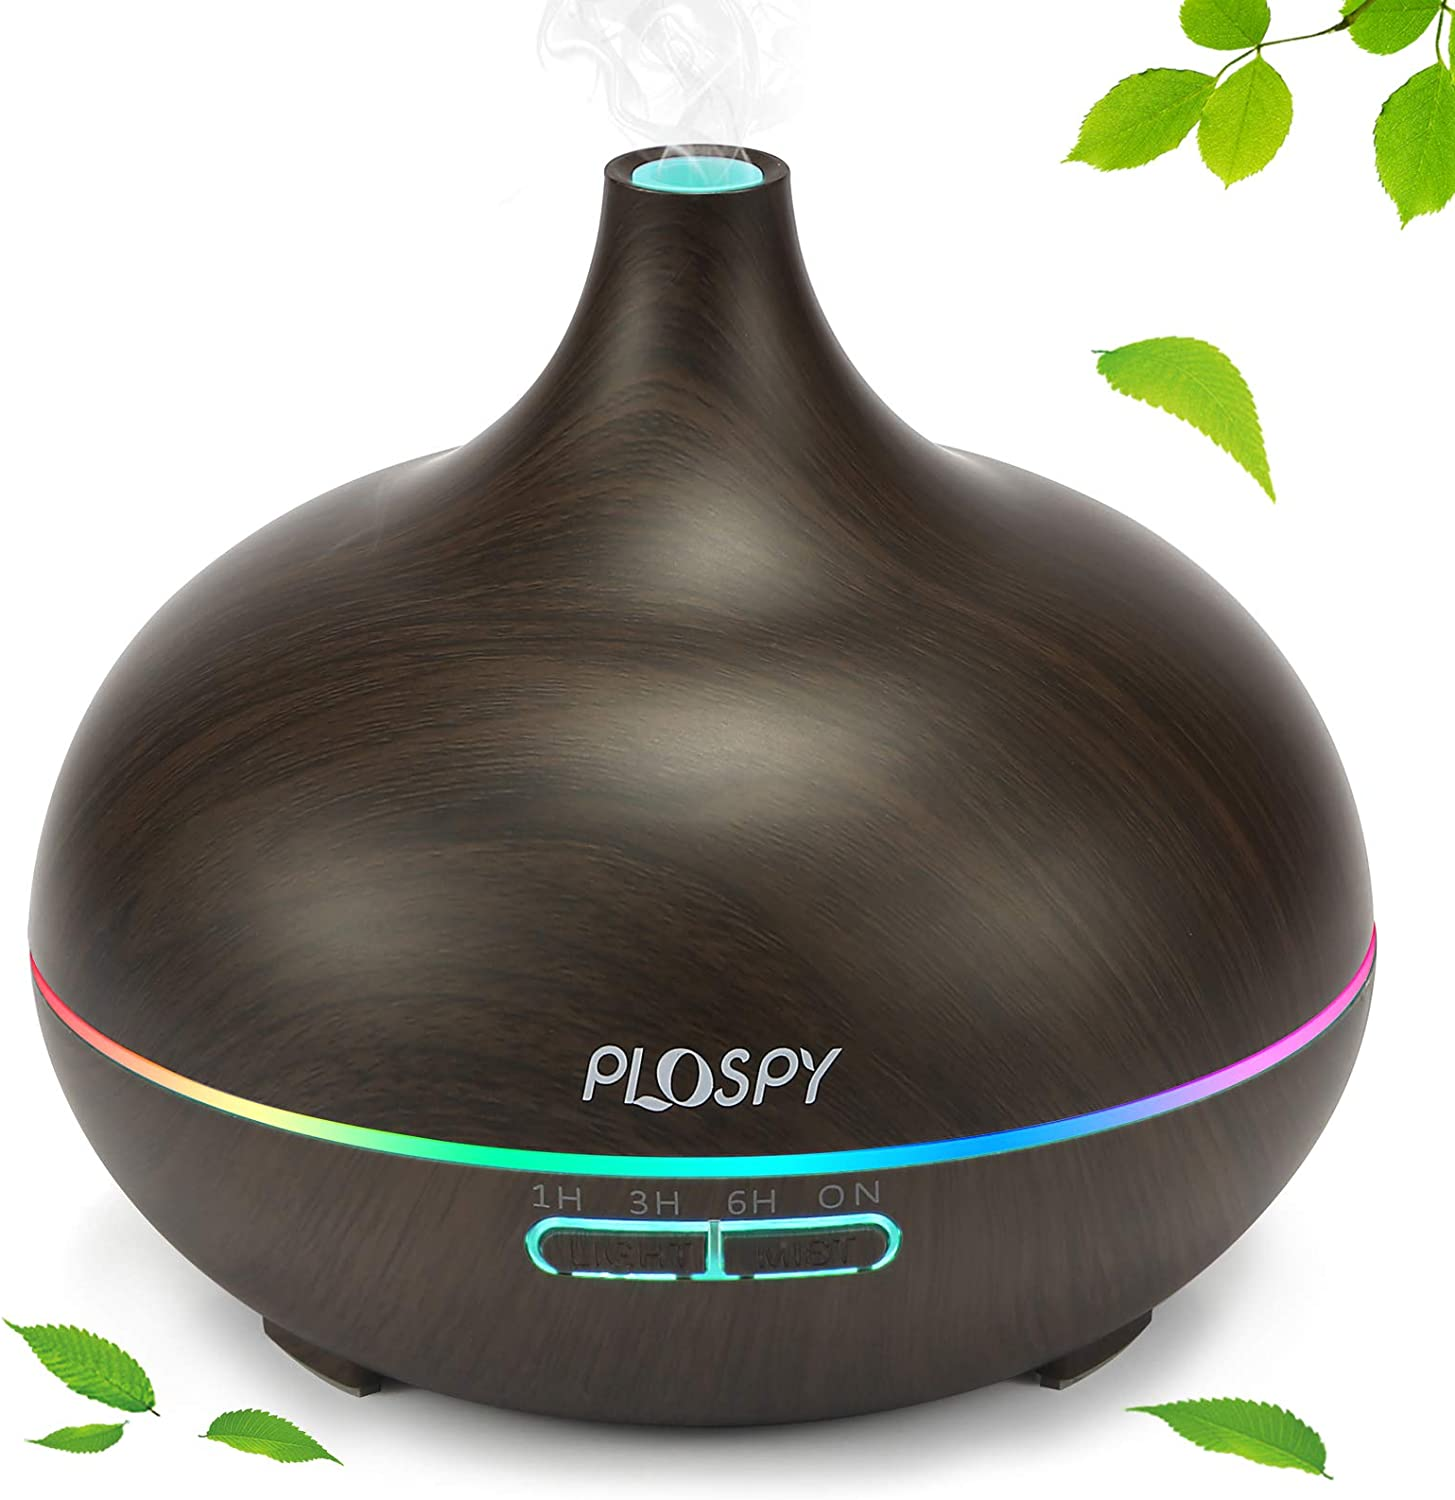 Diffusers for Essential Oils, 550ml Oil Diffuser Cool Mist Humidifier, Essential Oil Diffuser with 4 Timer & 7 Lights, Aromatherapy Diffuser for Office Home